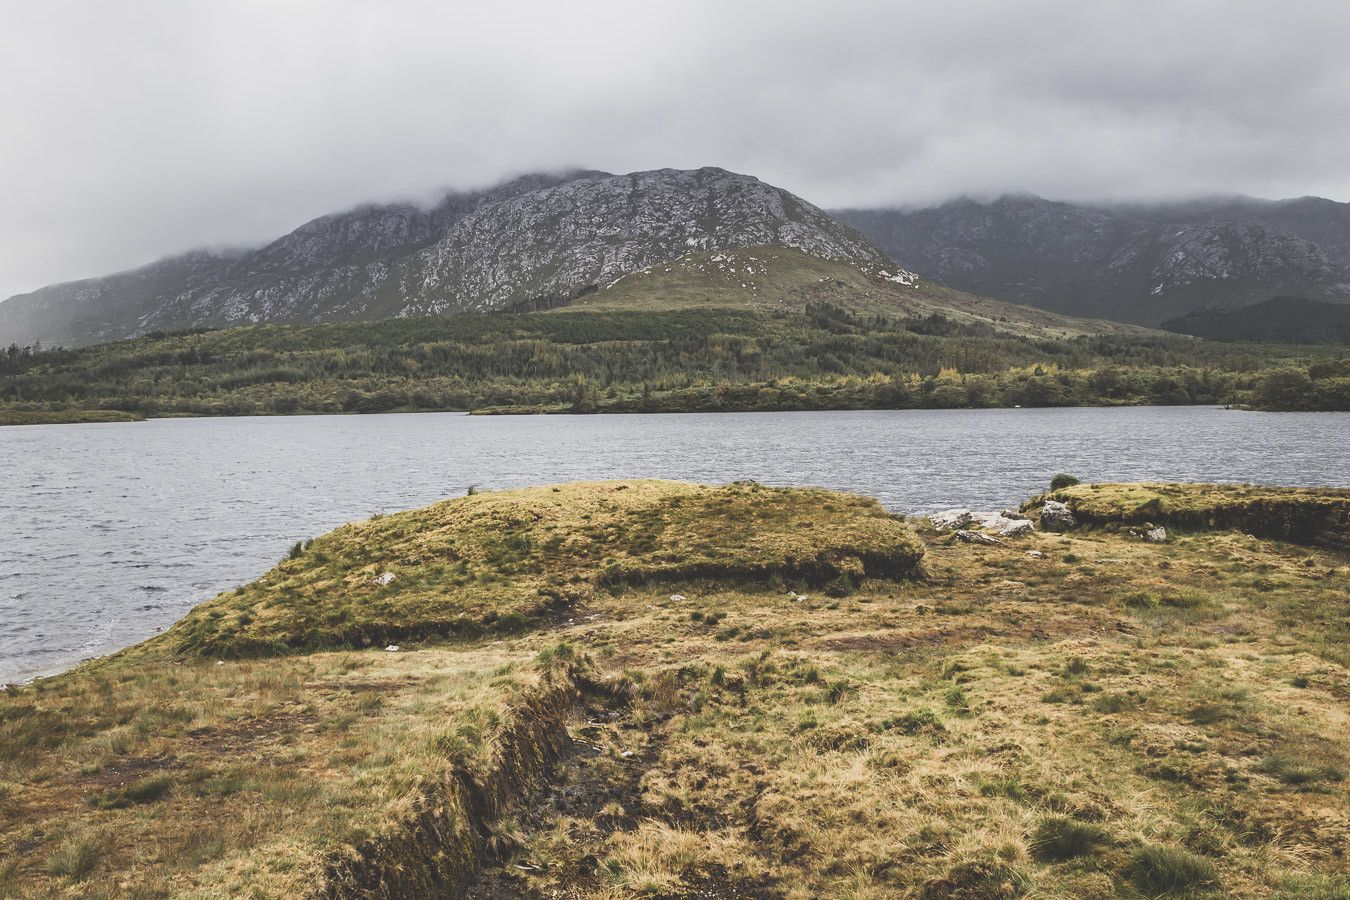 Connemara, Lough Inagh